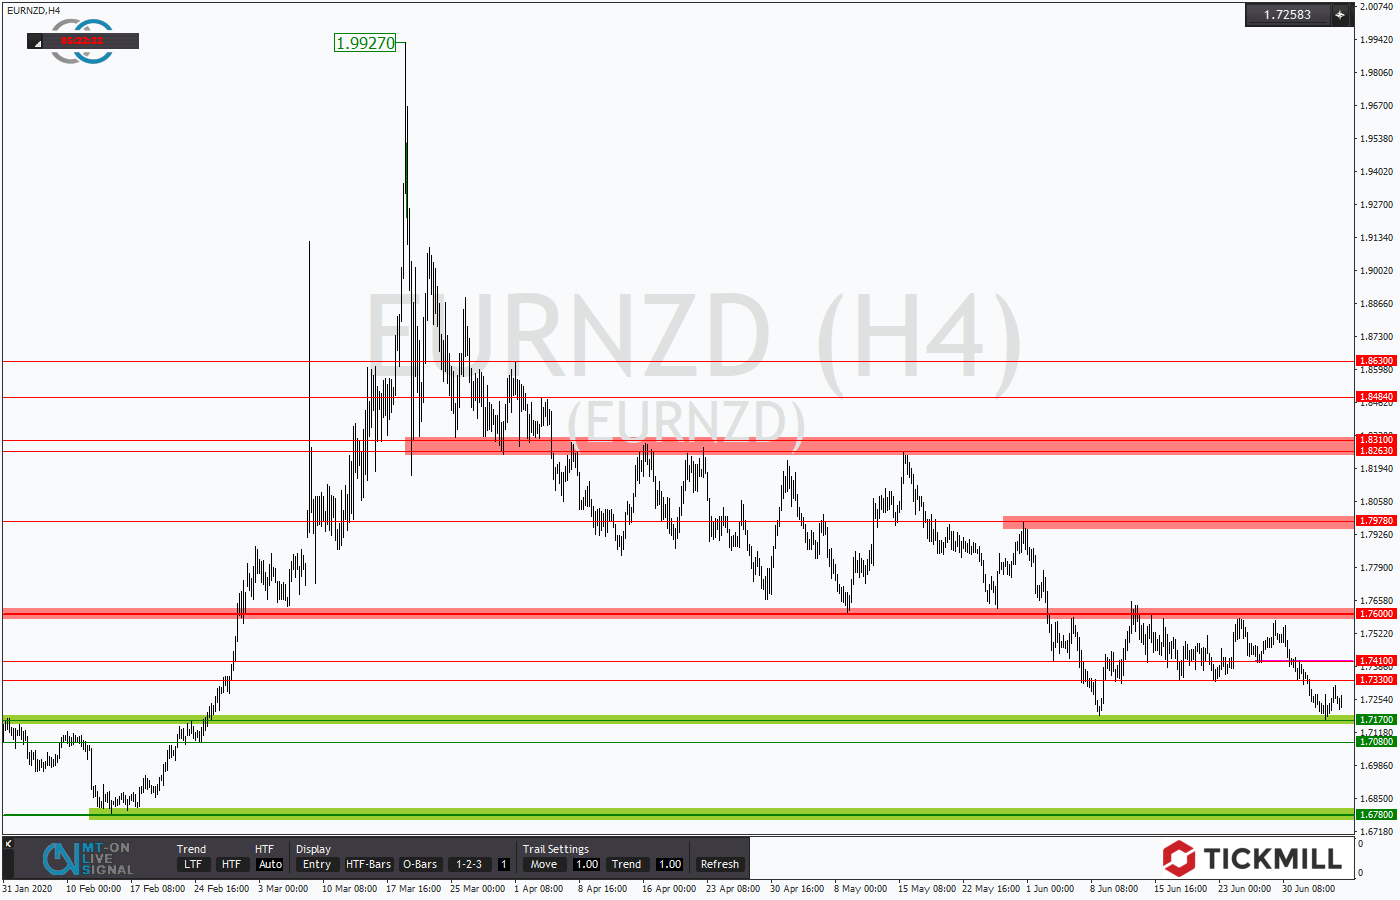 Tickmill-Analyse: EURNZD am Support